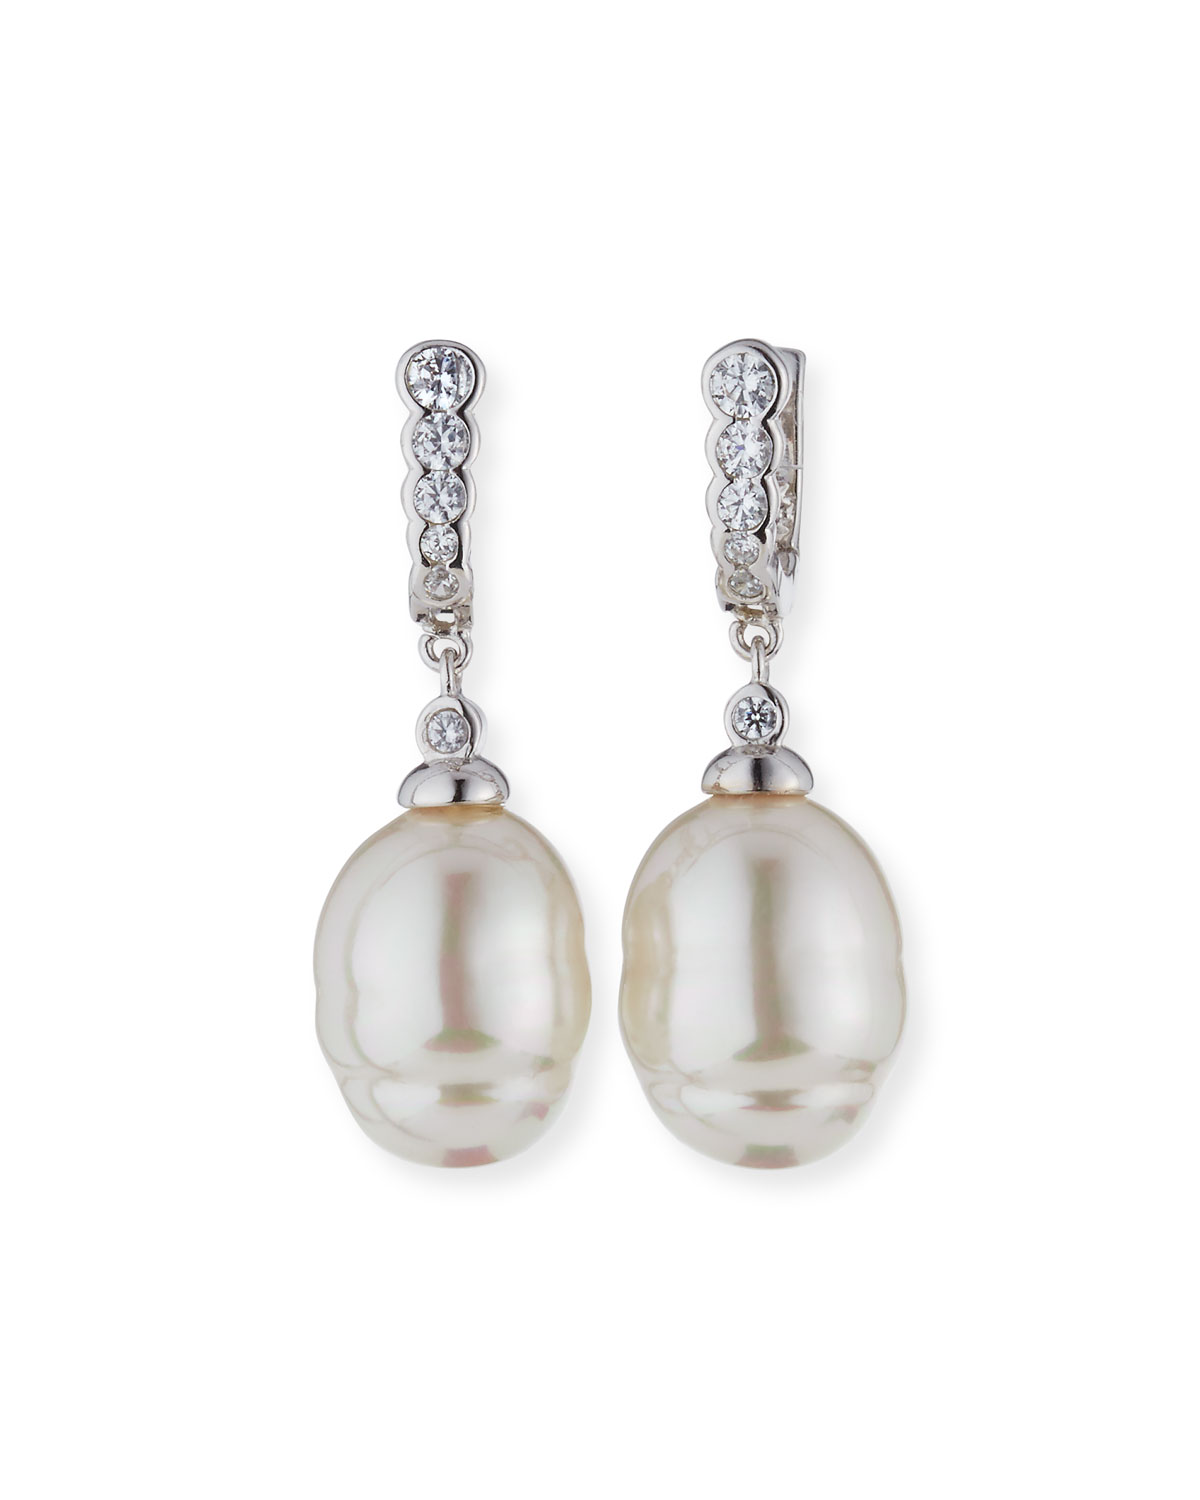 14mm Baroque Simulated Pearl Cubic Zirconia Earrings